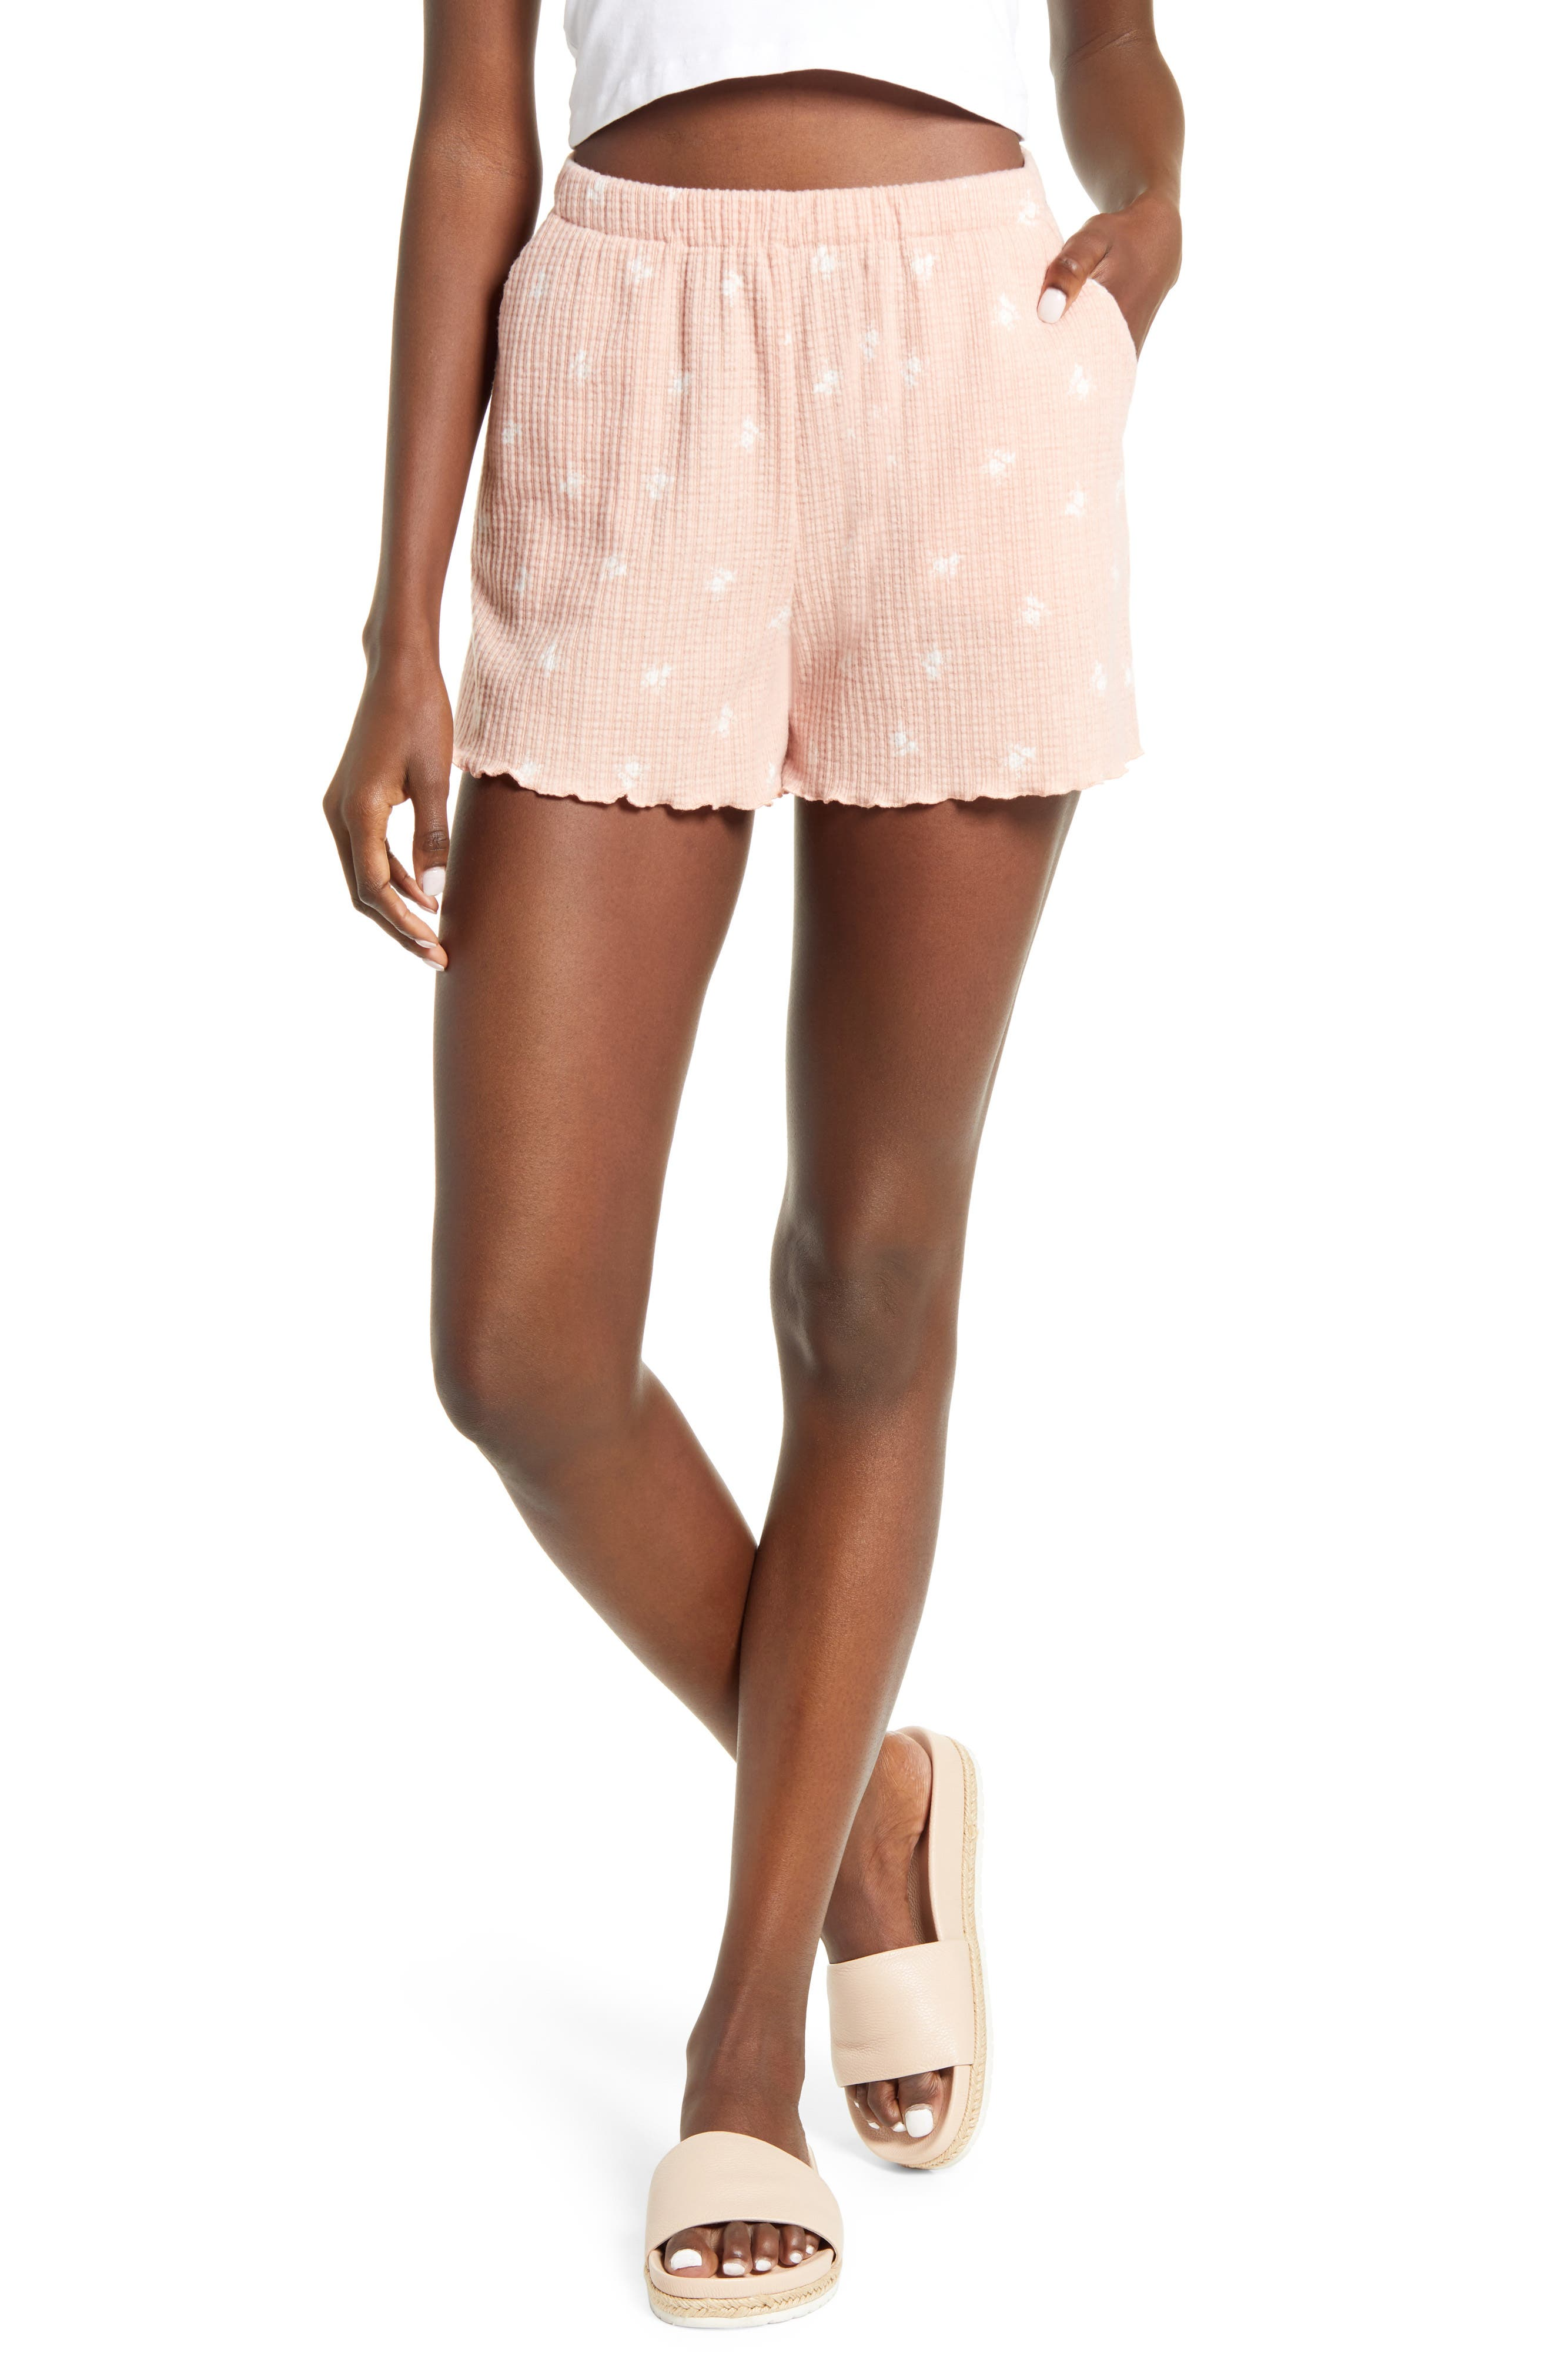 Softly ribbed shorts are tossed with a lettuce edge for a look that instantly brightens an already sunny day. Style Name: All In Favor Lettuce Hem Shorts. Style Number: 6143026. Available in stores.